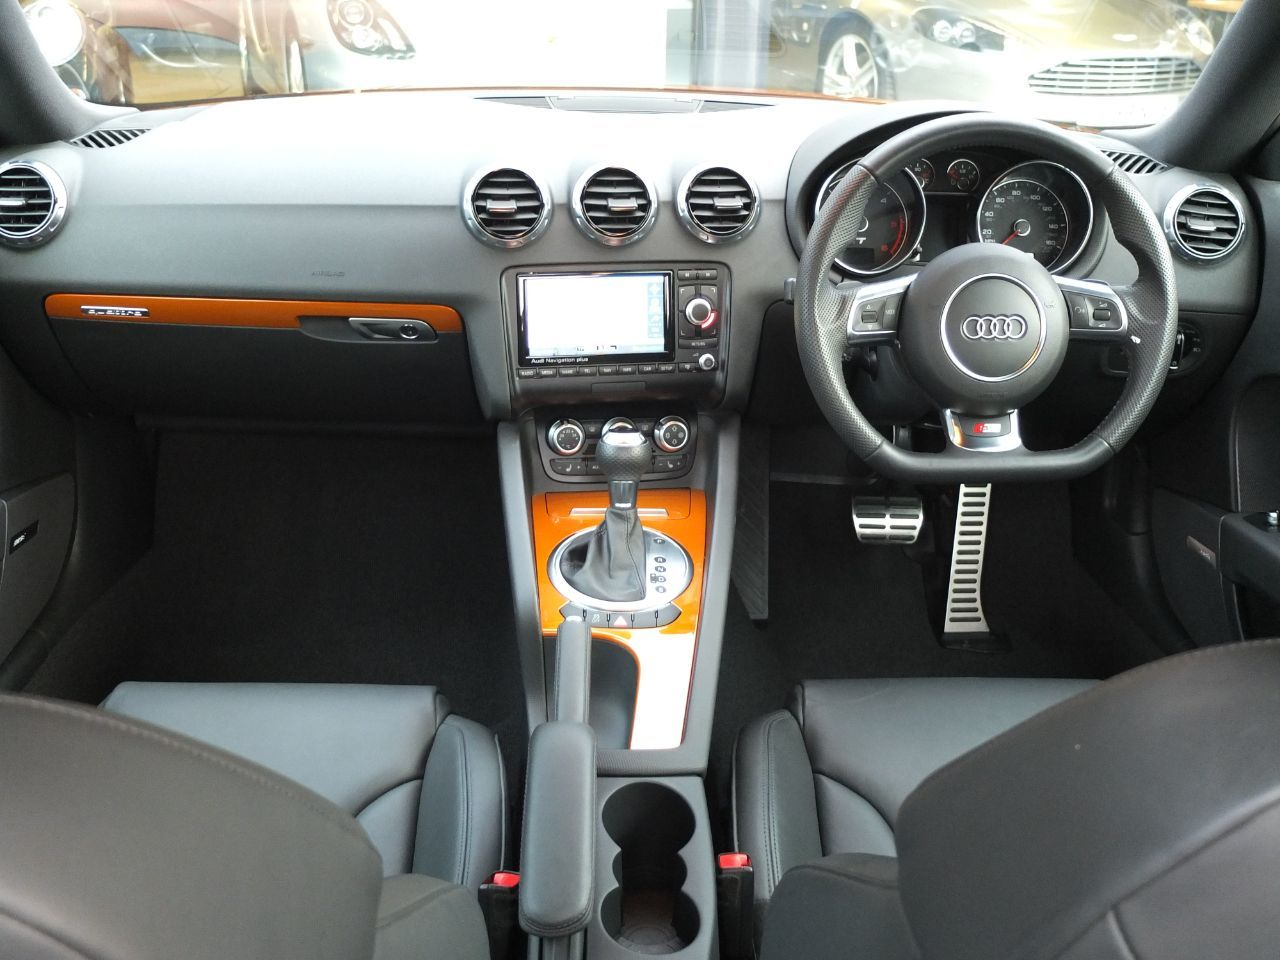 Audi TT 2.0 TDI Quattro Black Edition S Tronic (Amplified Edition +++ Spec) Coupe Diesel Samoa Orange Metallic